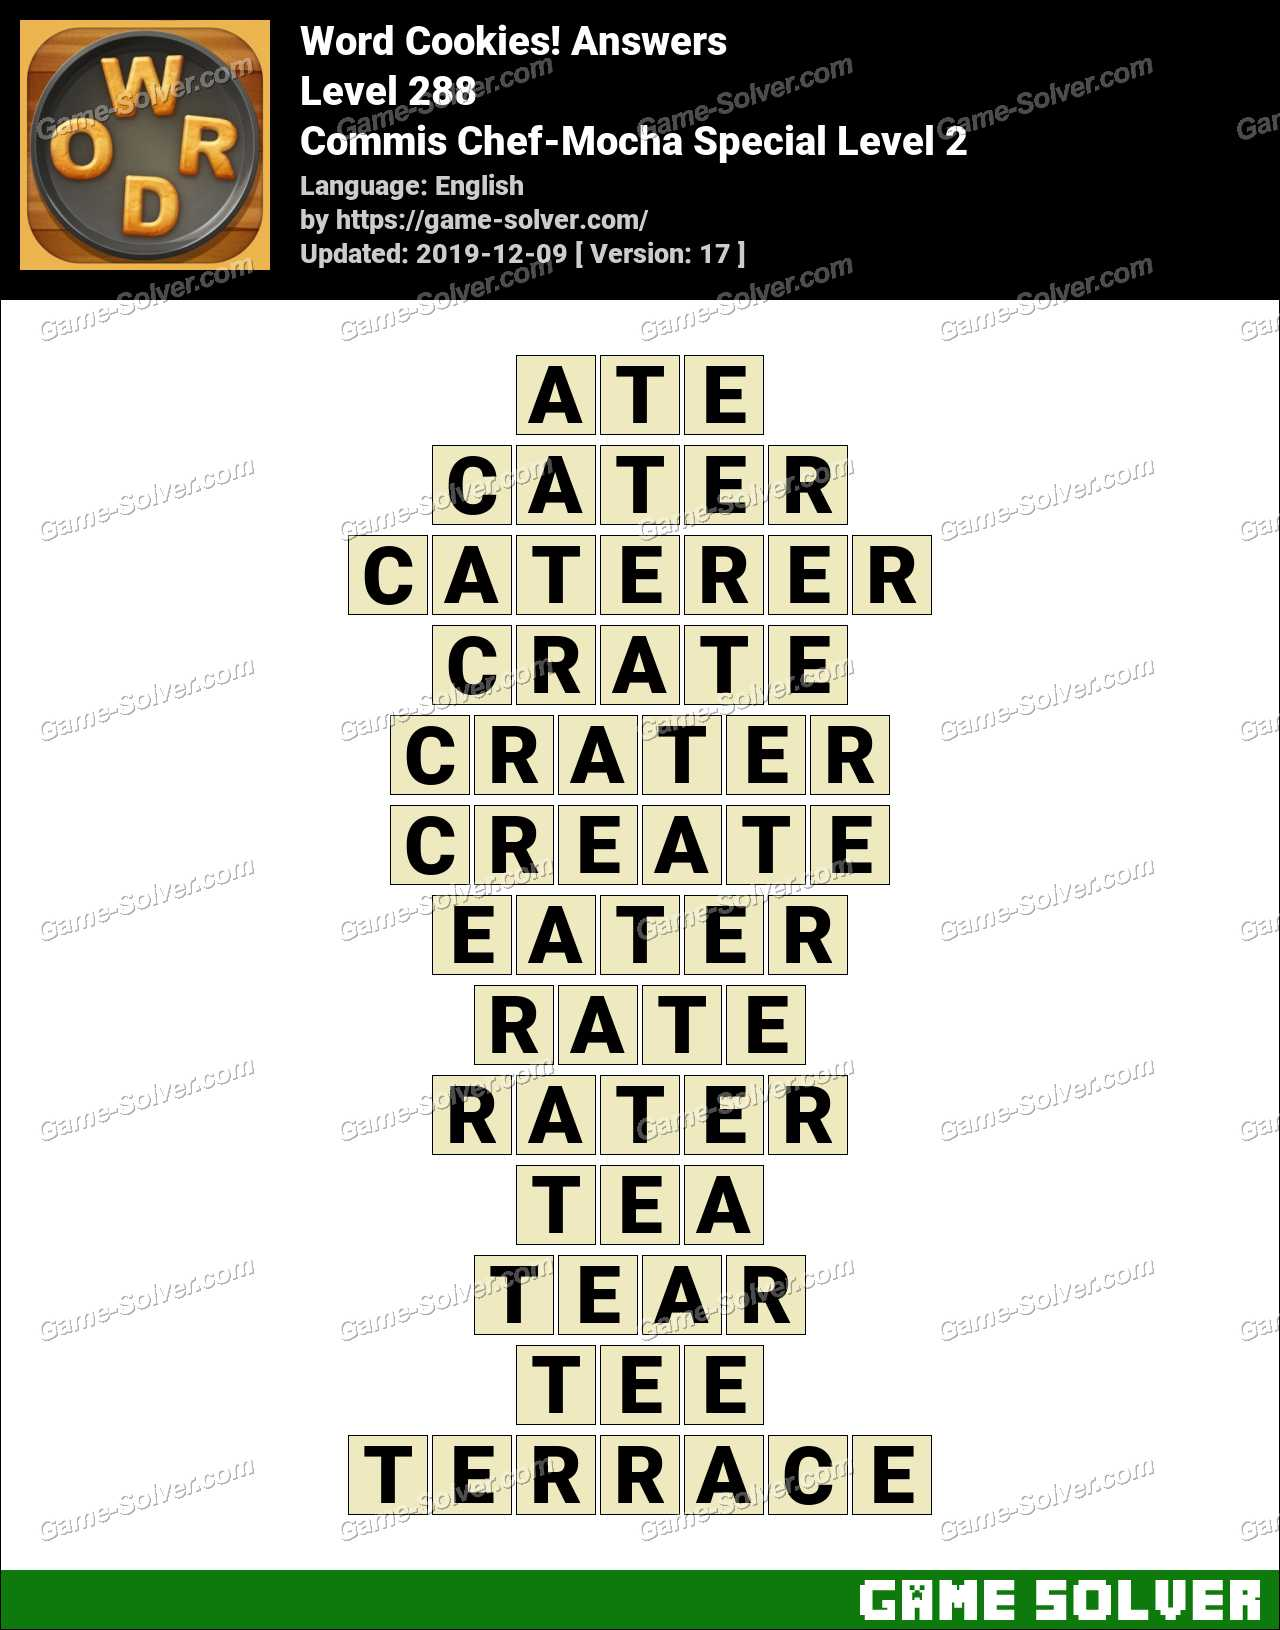 Word Cookies Commis Chef-Mocha Special Level 2 Answers